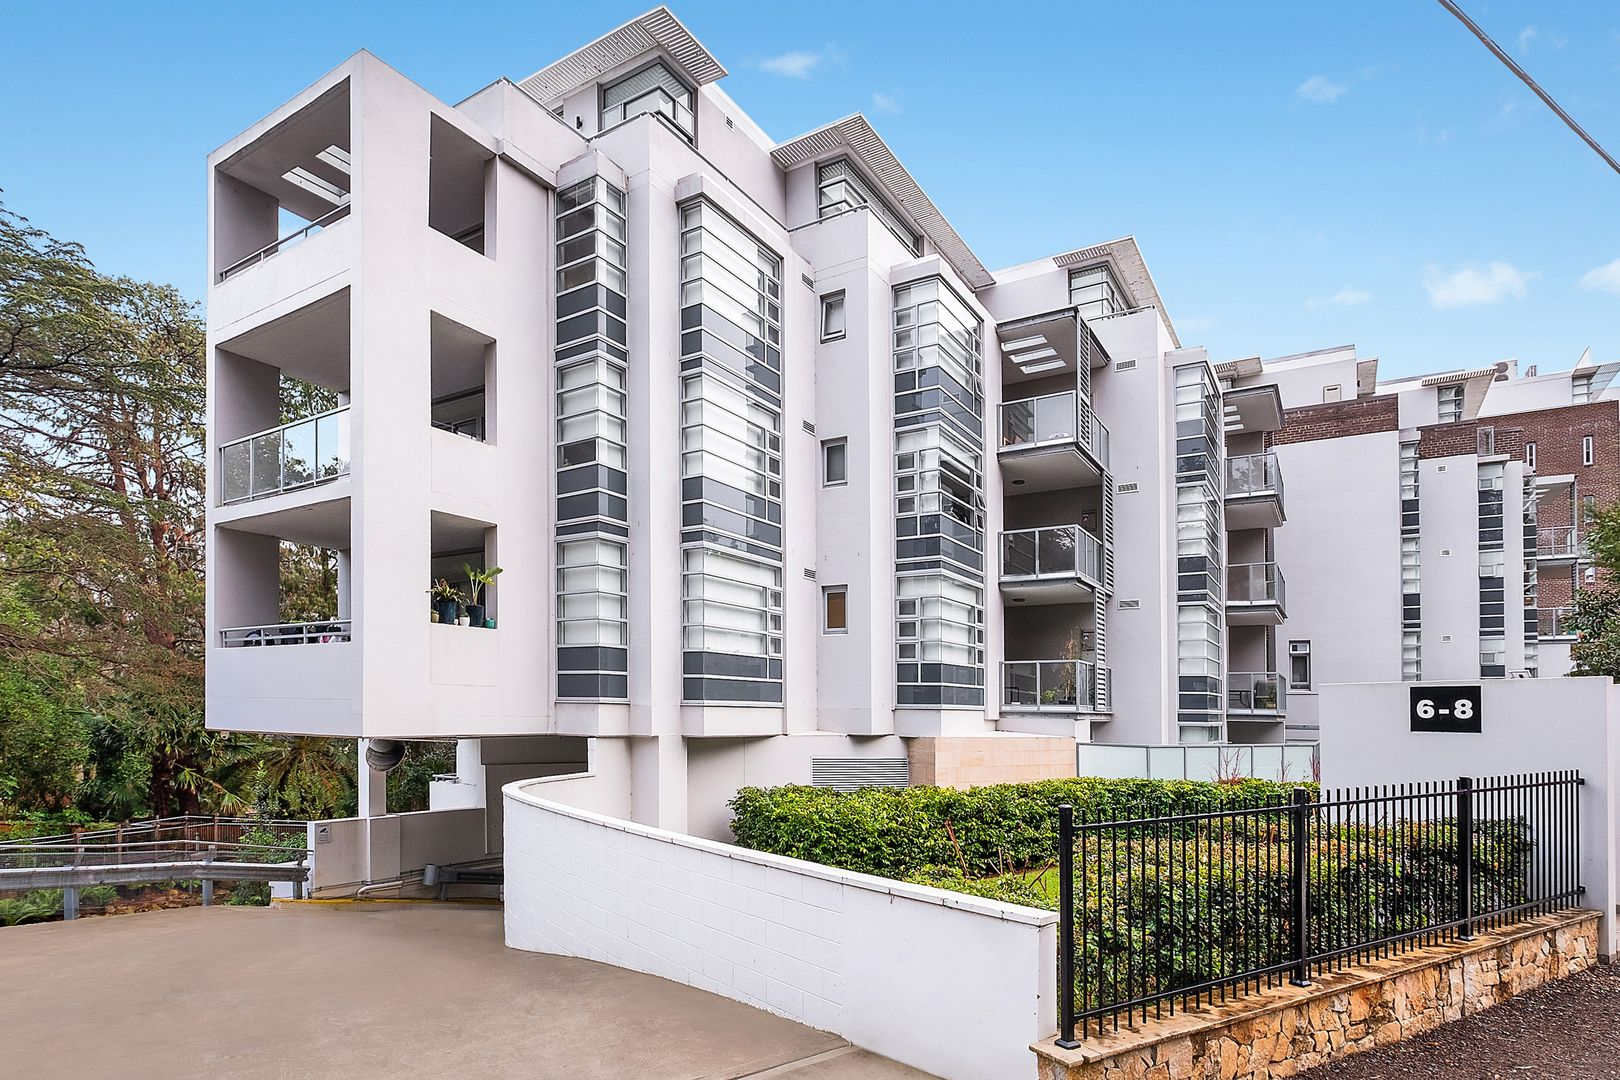 13/6-8 Drovers Way, Lindfield NSW 2070, Image 0